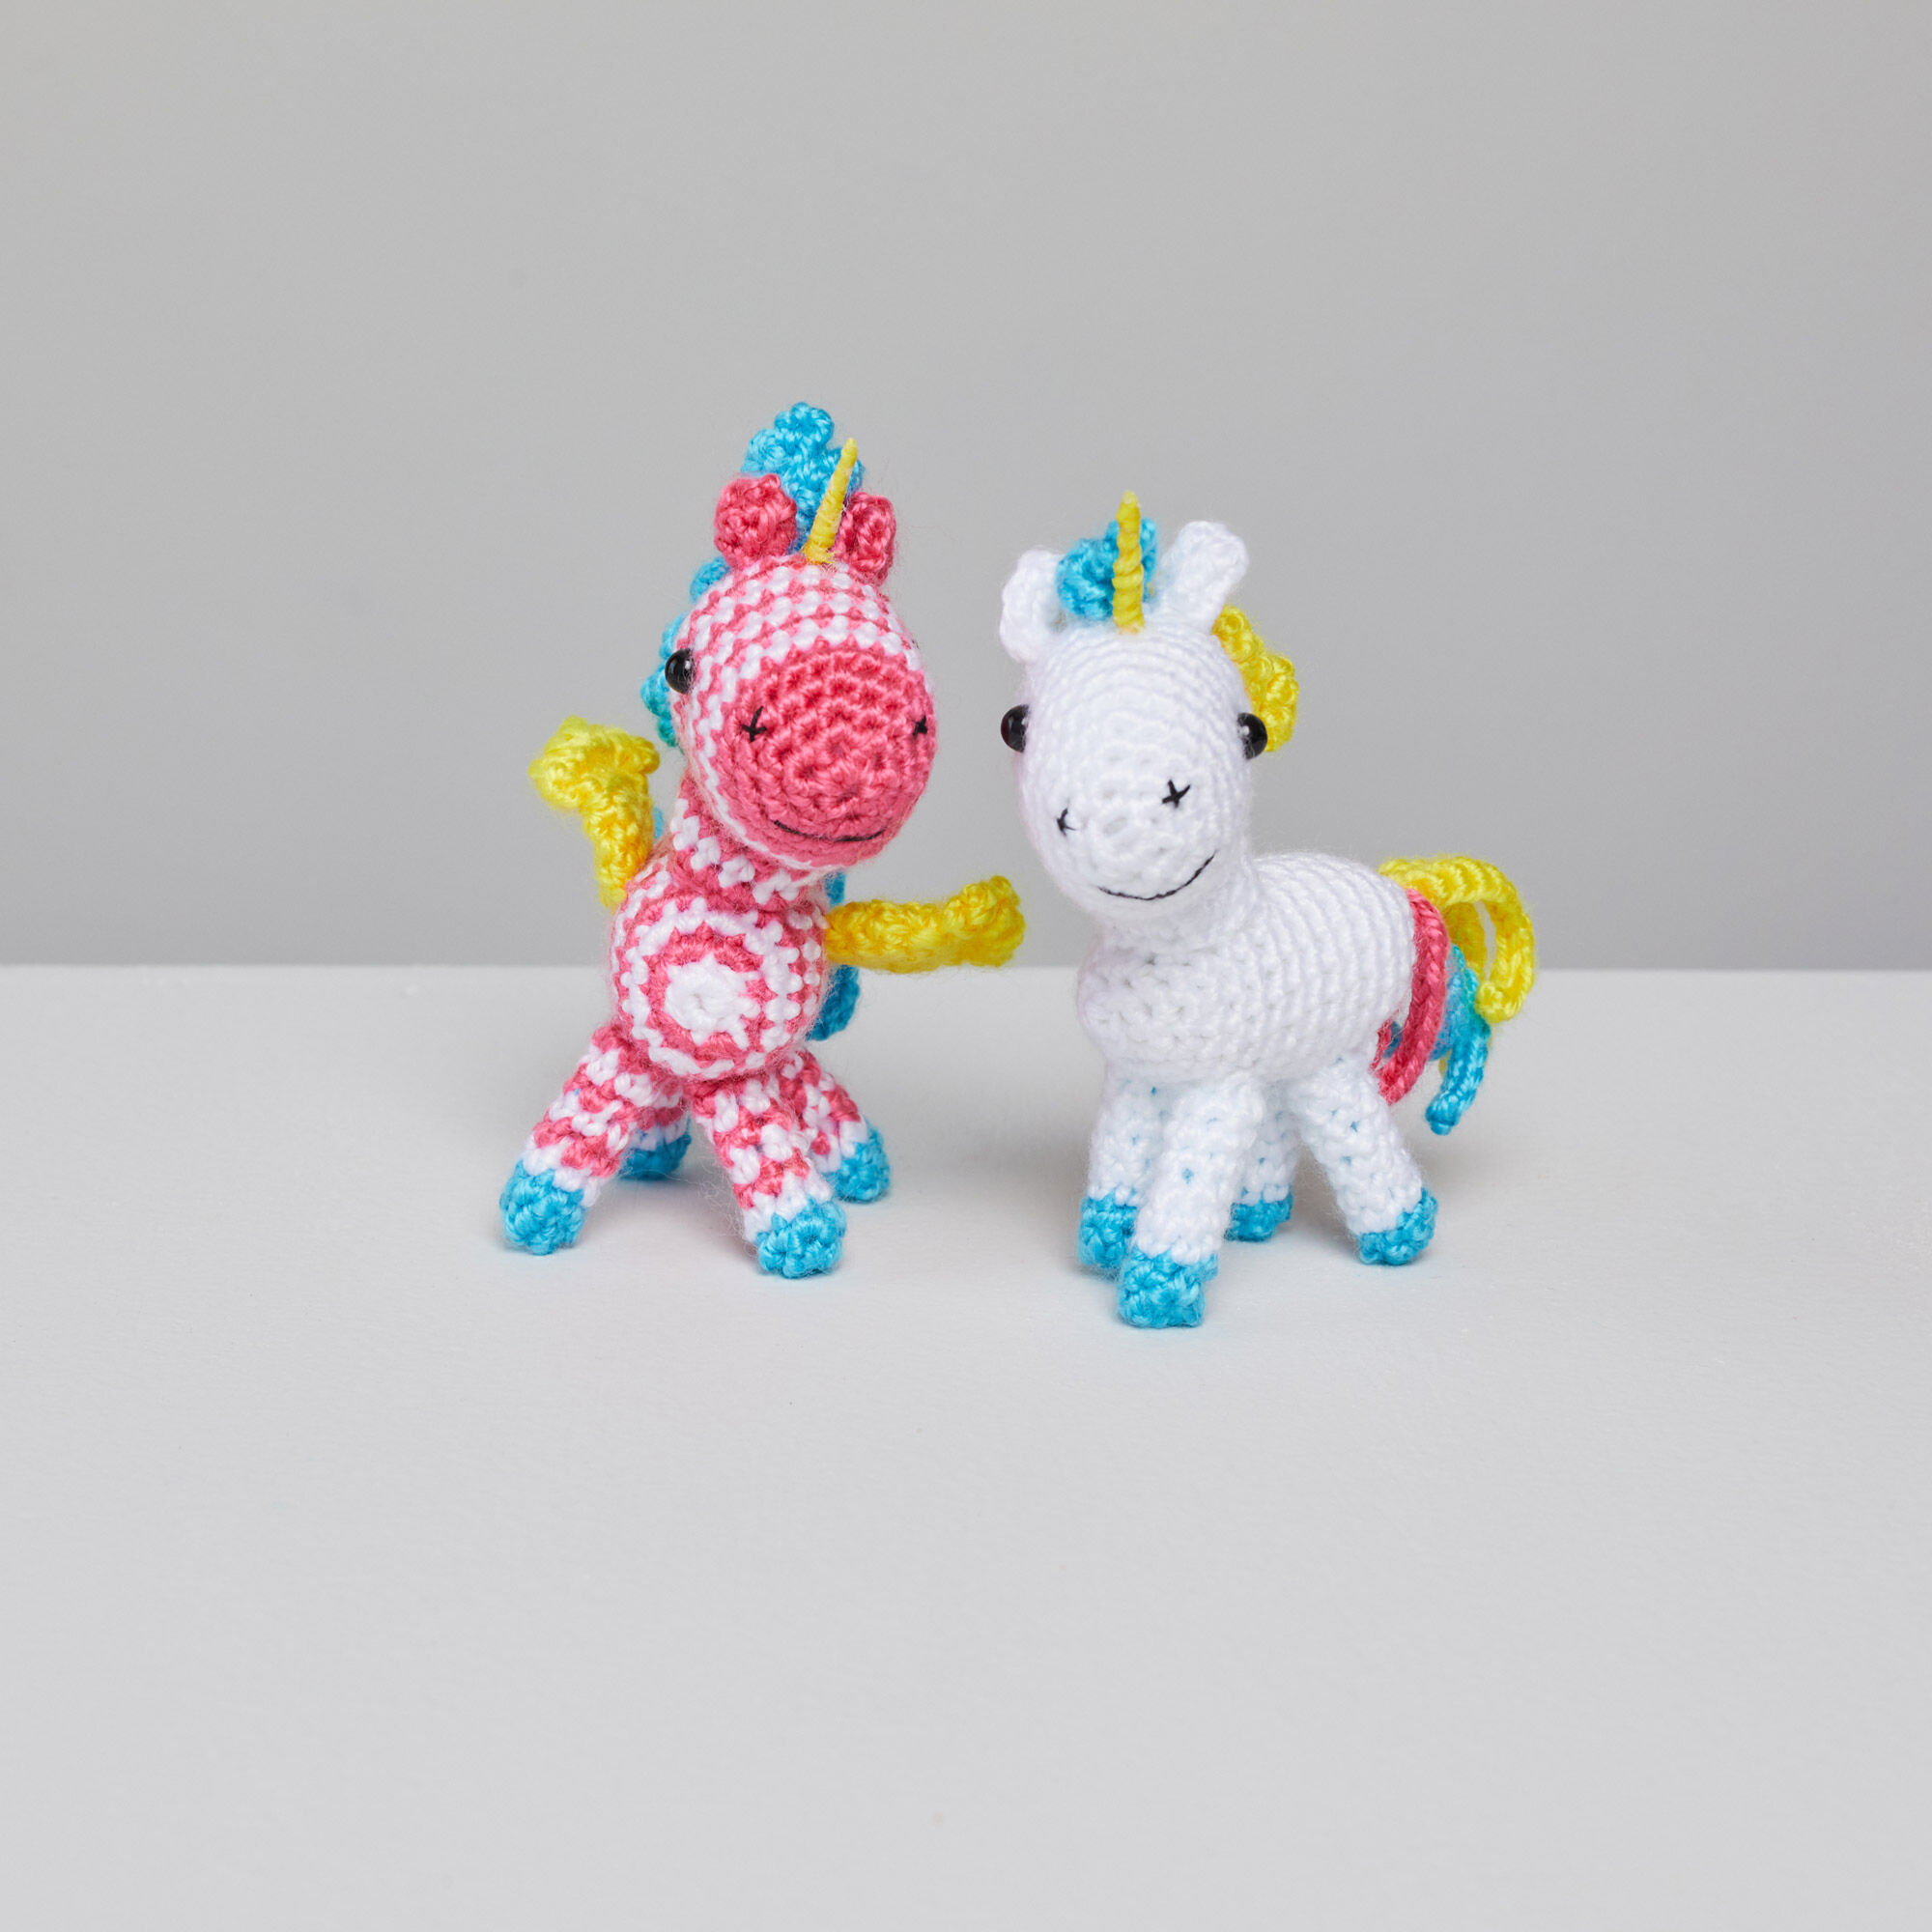 Free Crochet Pattern for Twinkle the Unicorn ⋆ Crochet Kingdom | 2000x2000